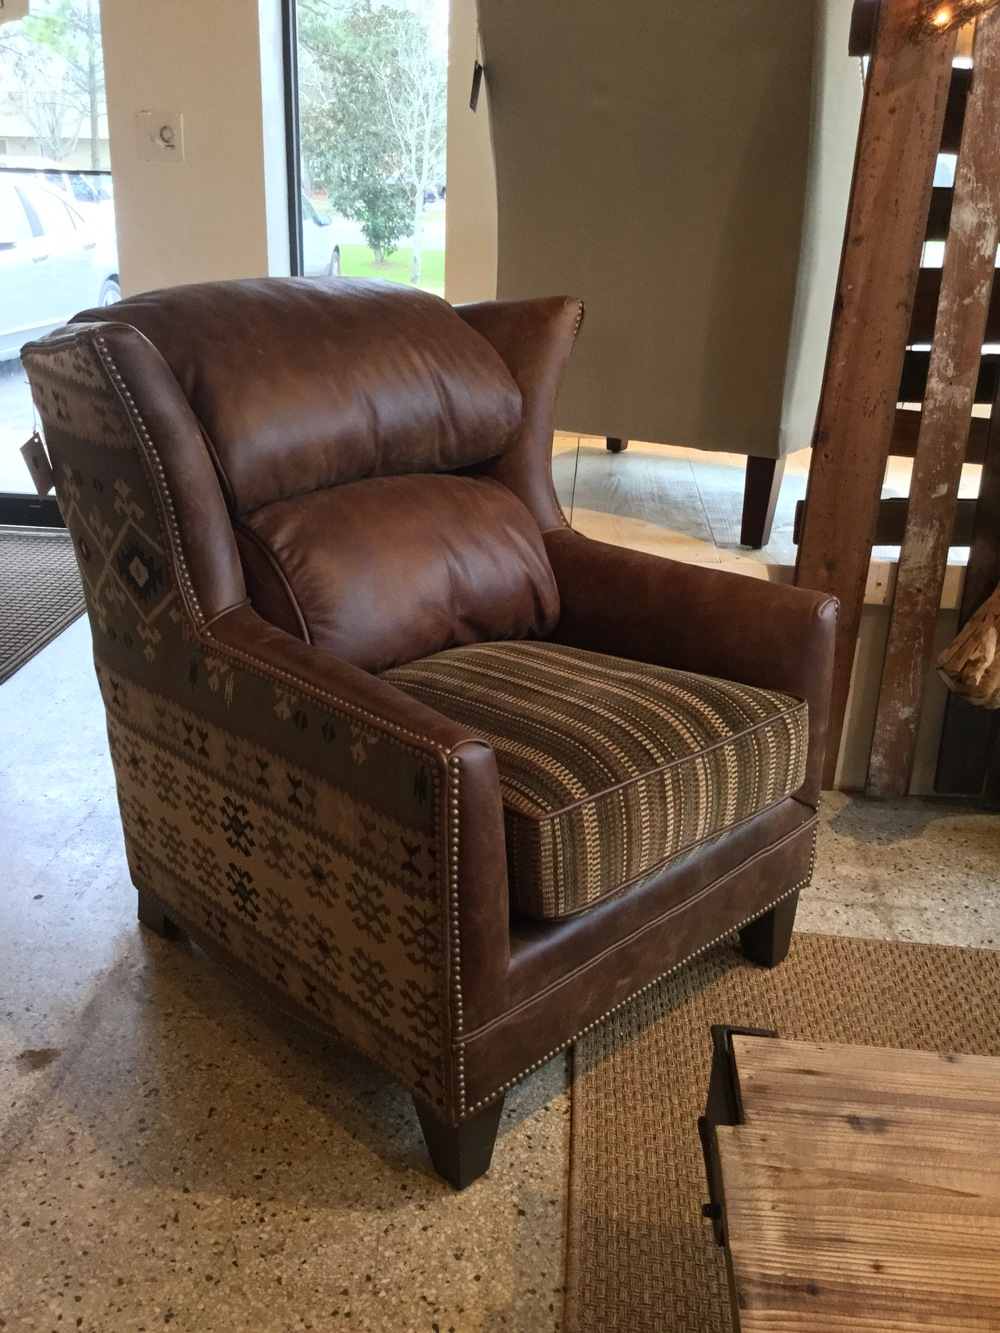 Charmant King Hickory Chair.JPG